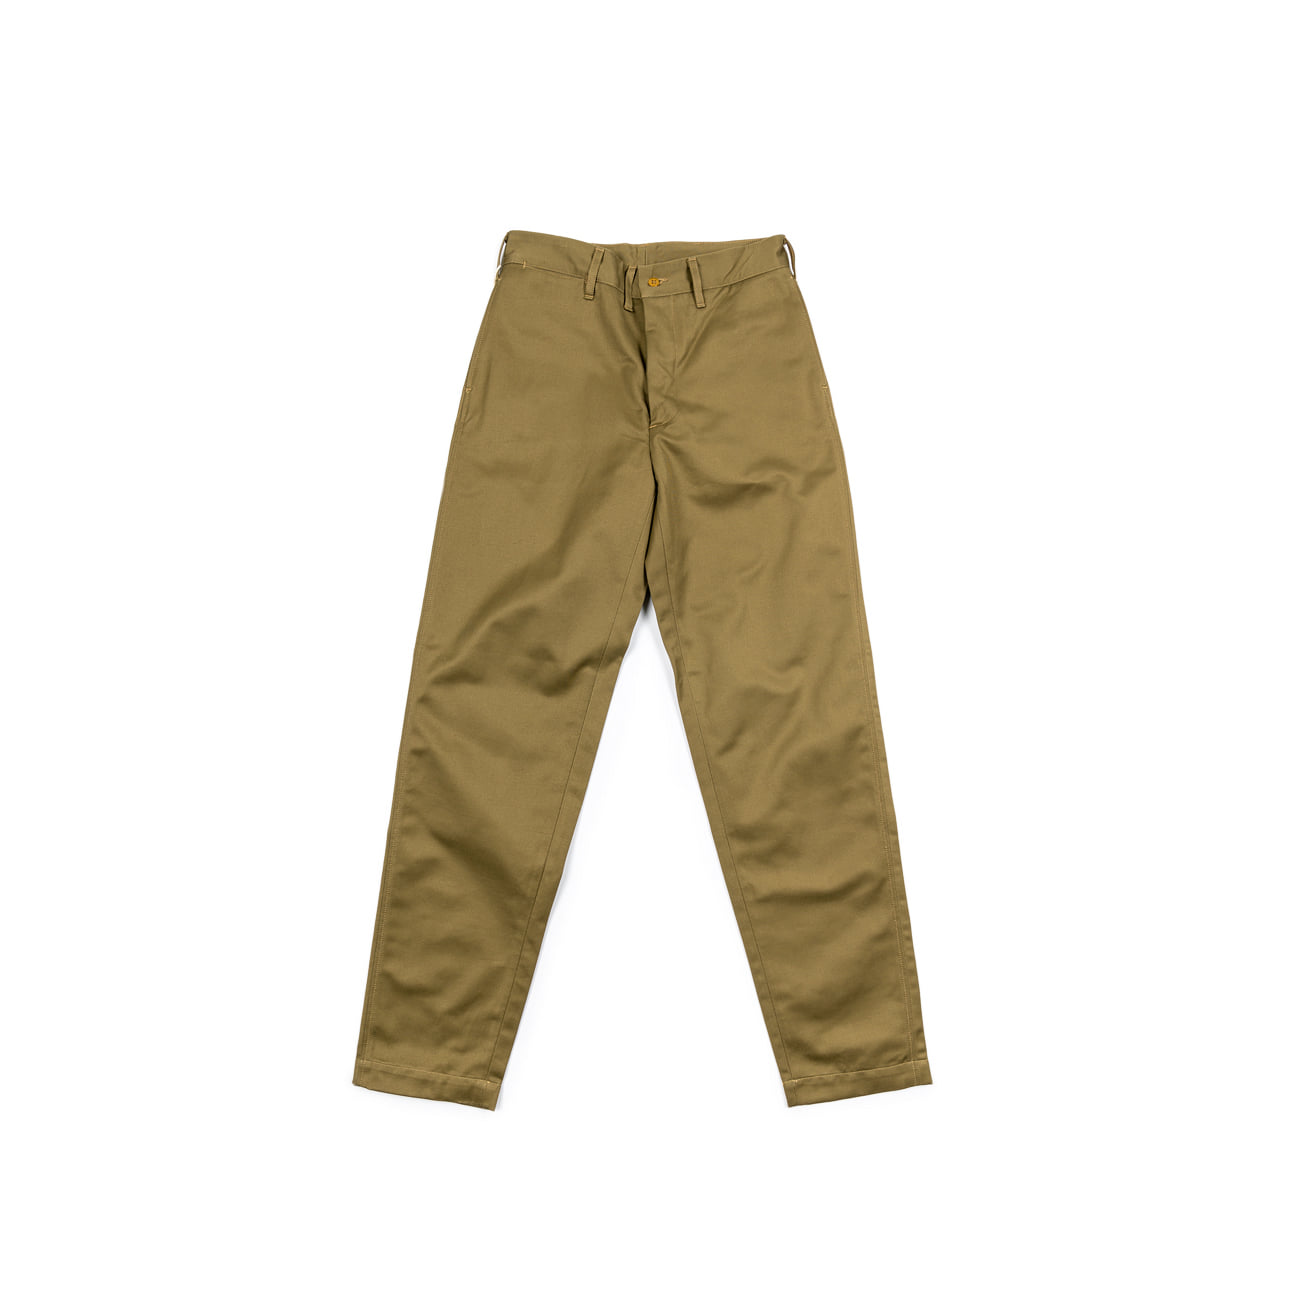 U.S.Navy Chino Trousers